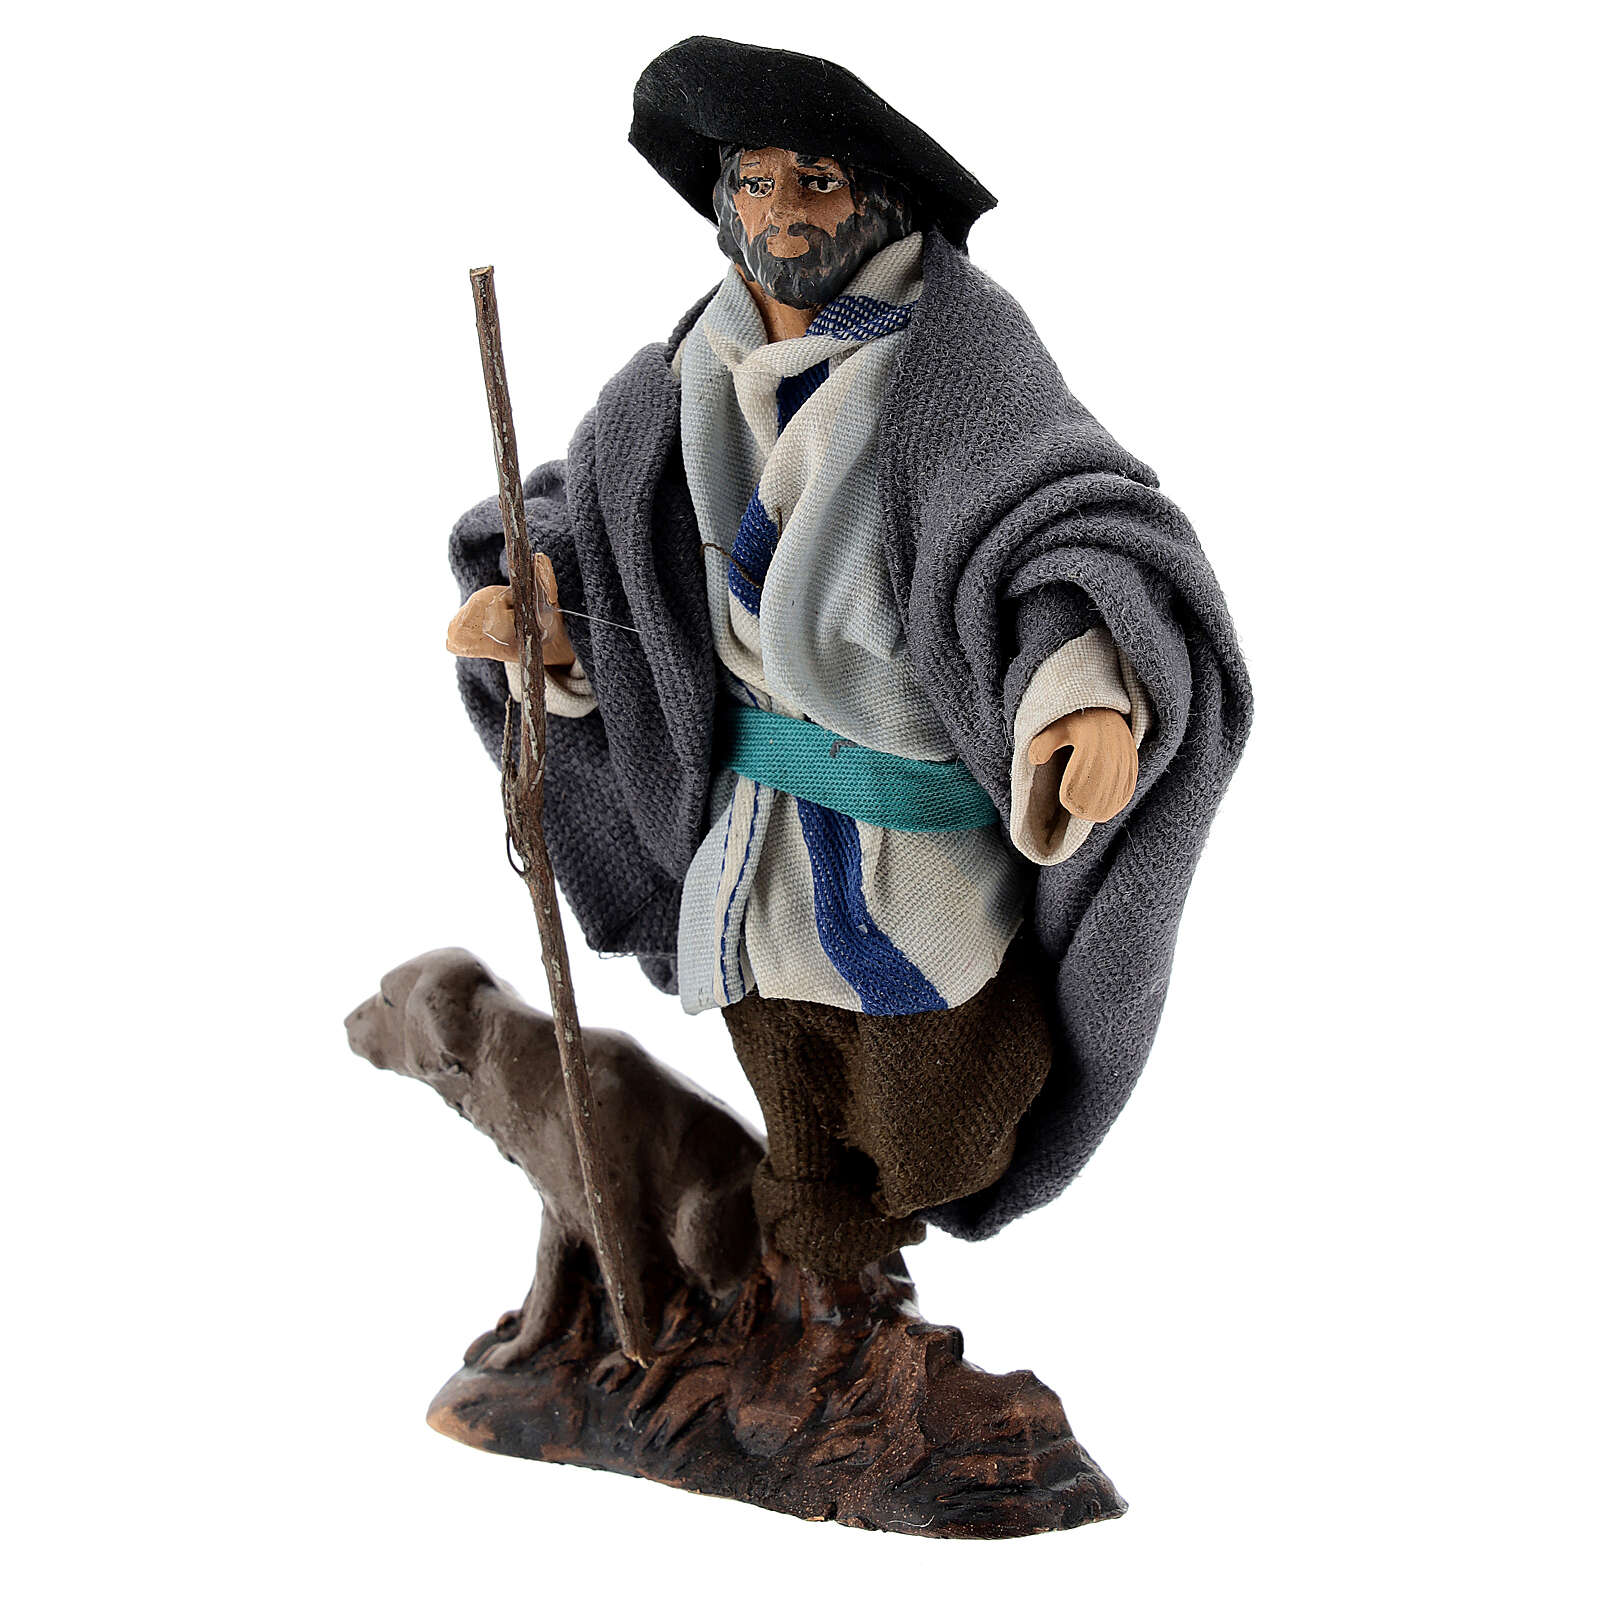 Limping man with dog in terracotta, 12 cm Neapolitan nativity 4